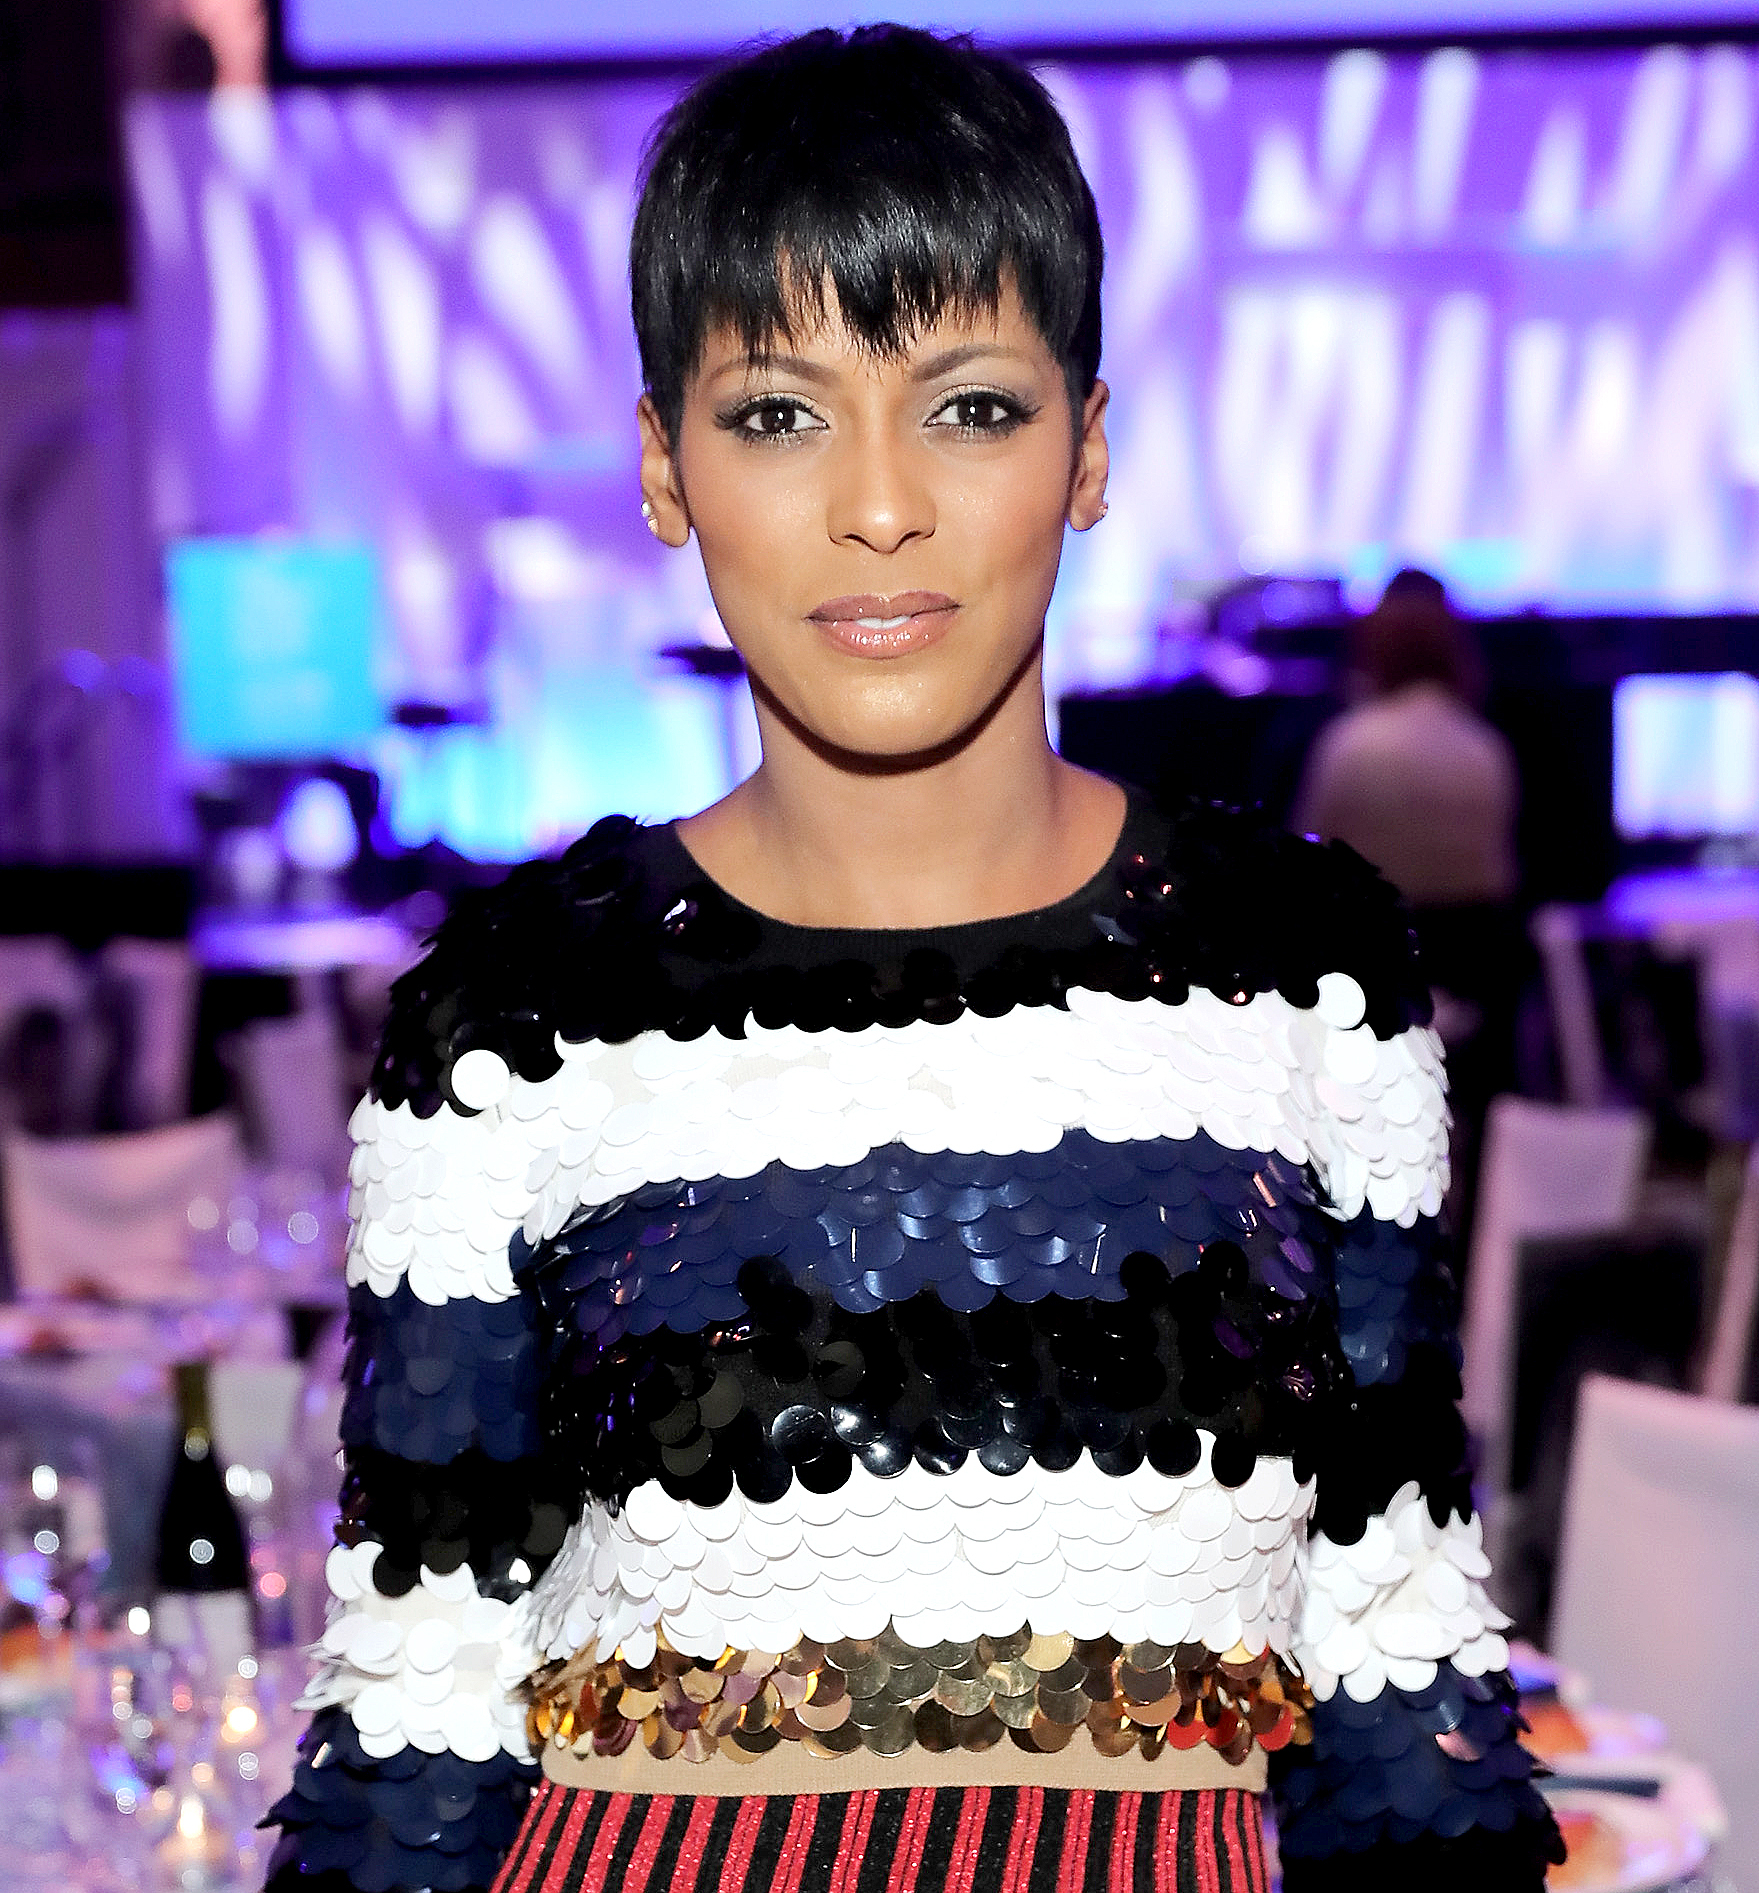 Journalist Tamron Hall attends the 12th annual UNICEF Snowflake Ball at Cipriani Wall Street on November 29, 2016 in New York City.